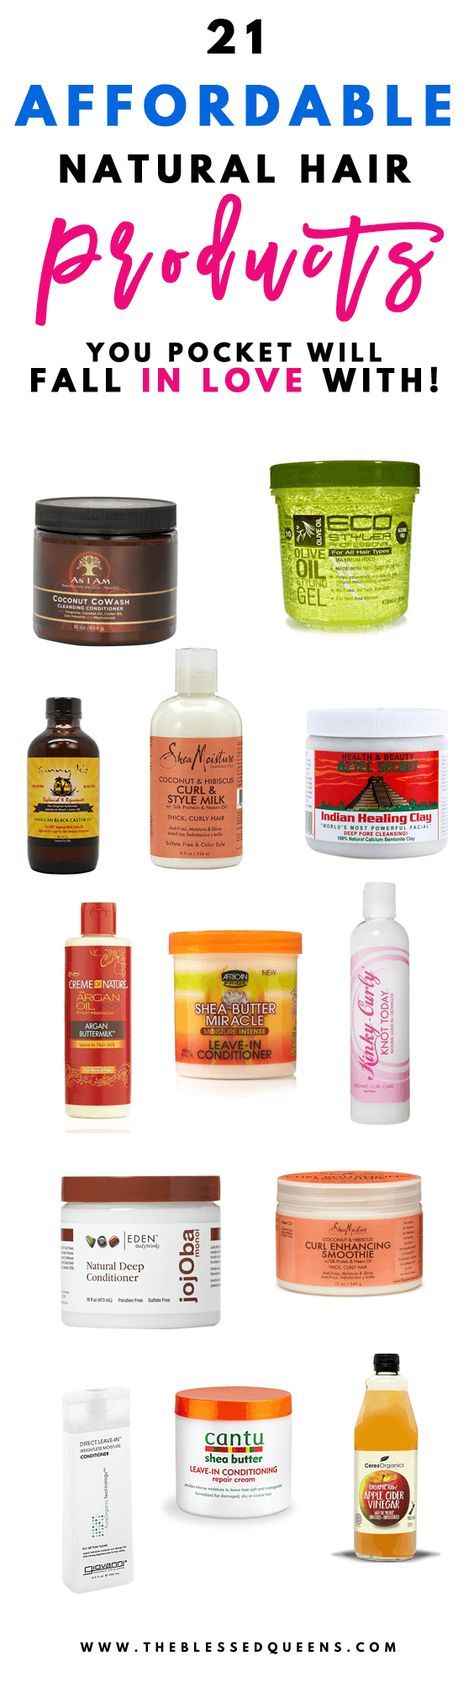 Best Affordable Natural Hair Products Your Pocket Will Love